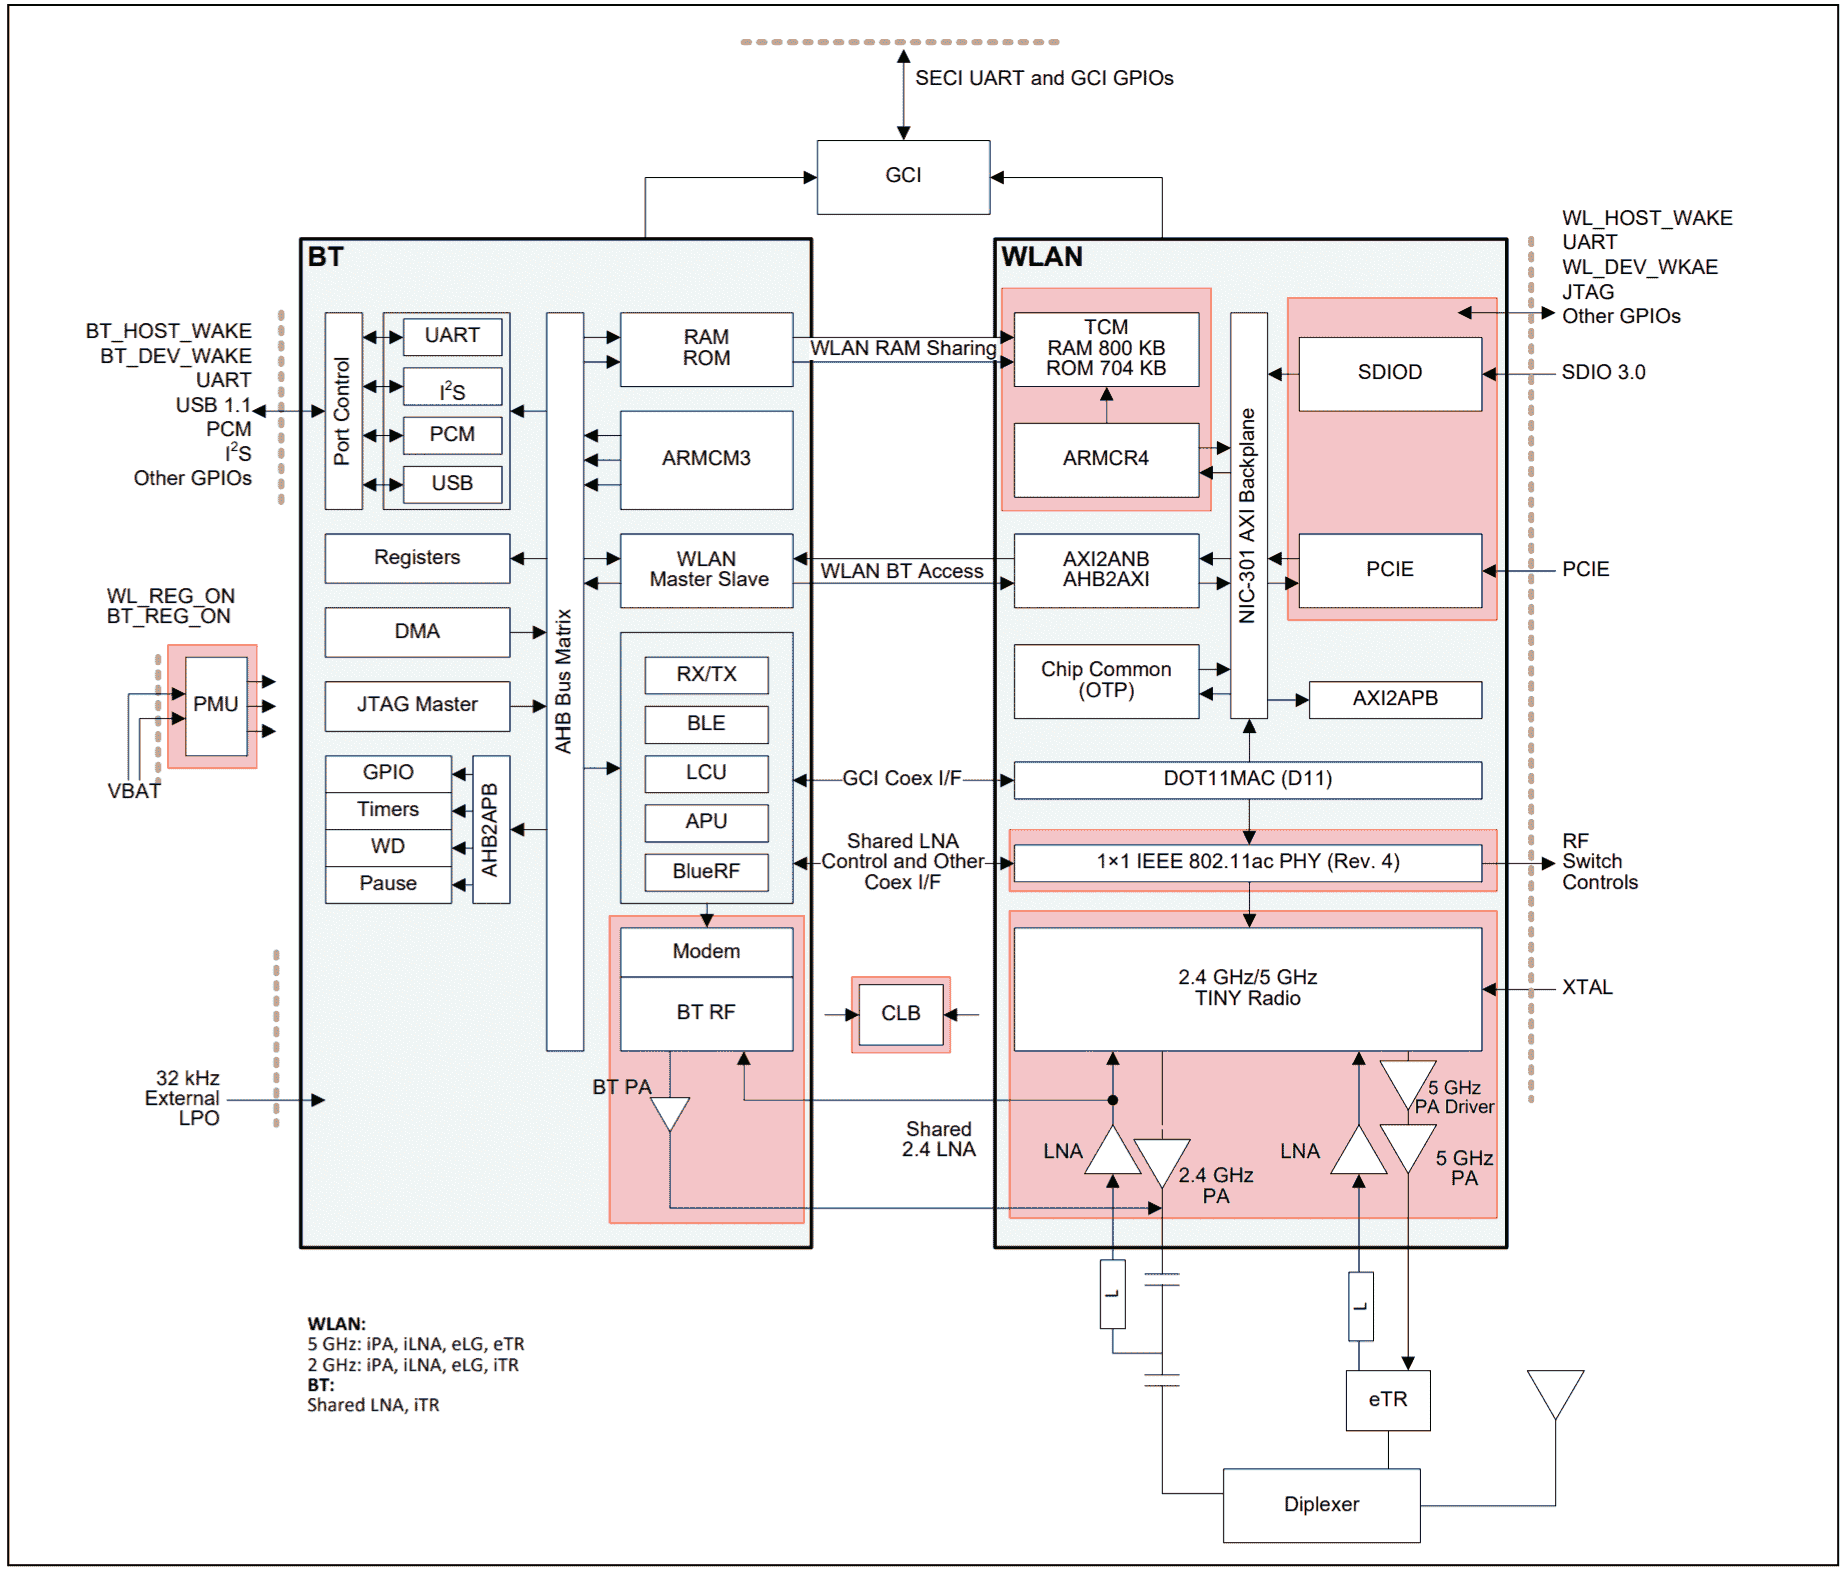 Raspberry pi 3b wireless chip cypress cyw43455 block diagram internally there are a couple of arm cores a cortex m3 for the bluetooth side and a cortex r4 on the wlan side it is almost like two separated cores ccuart Gallery